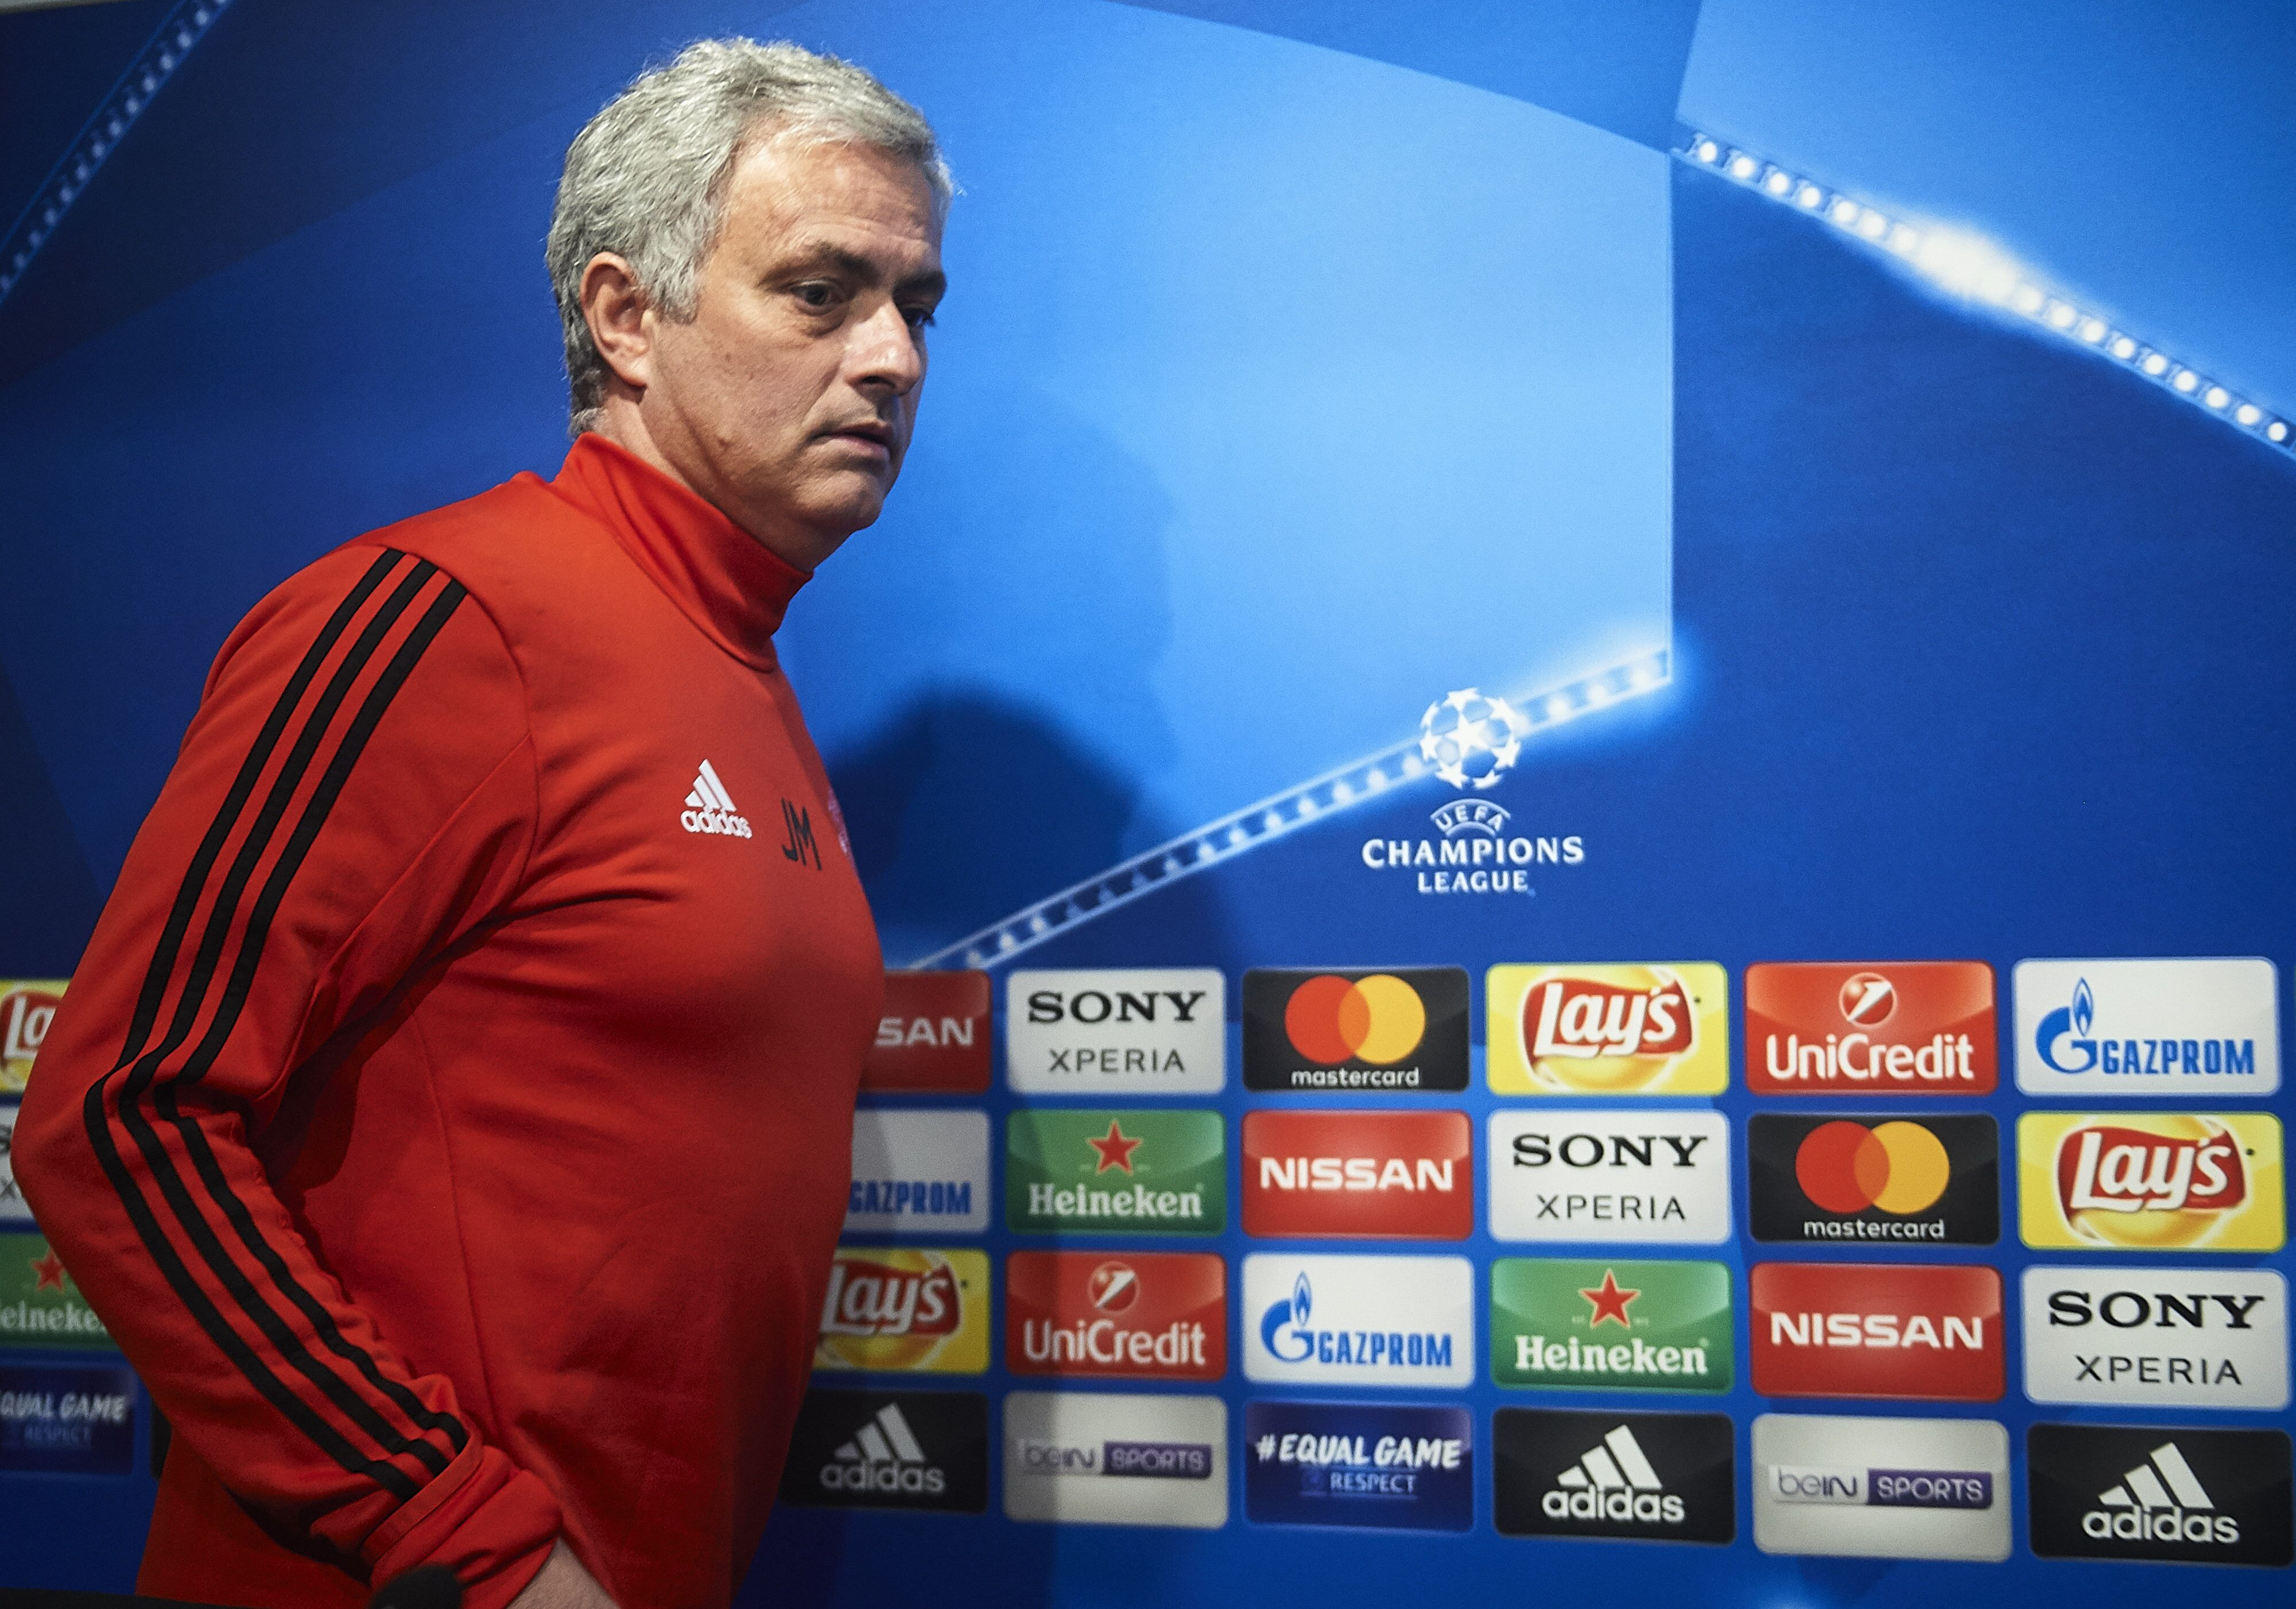 921552984-manchester-united-press-conference.jpg